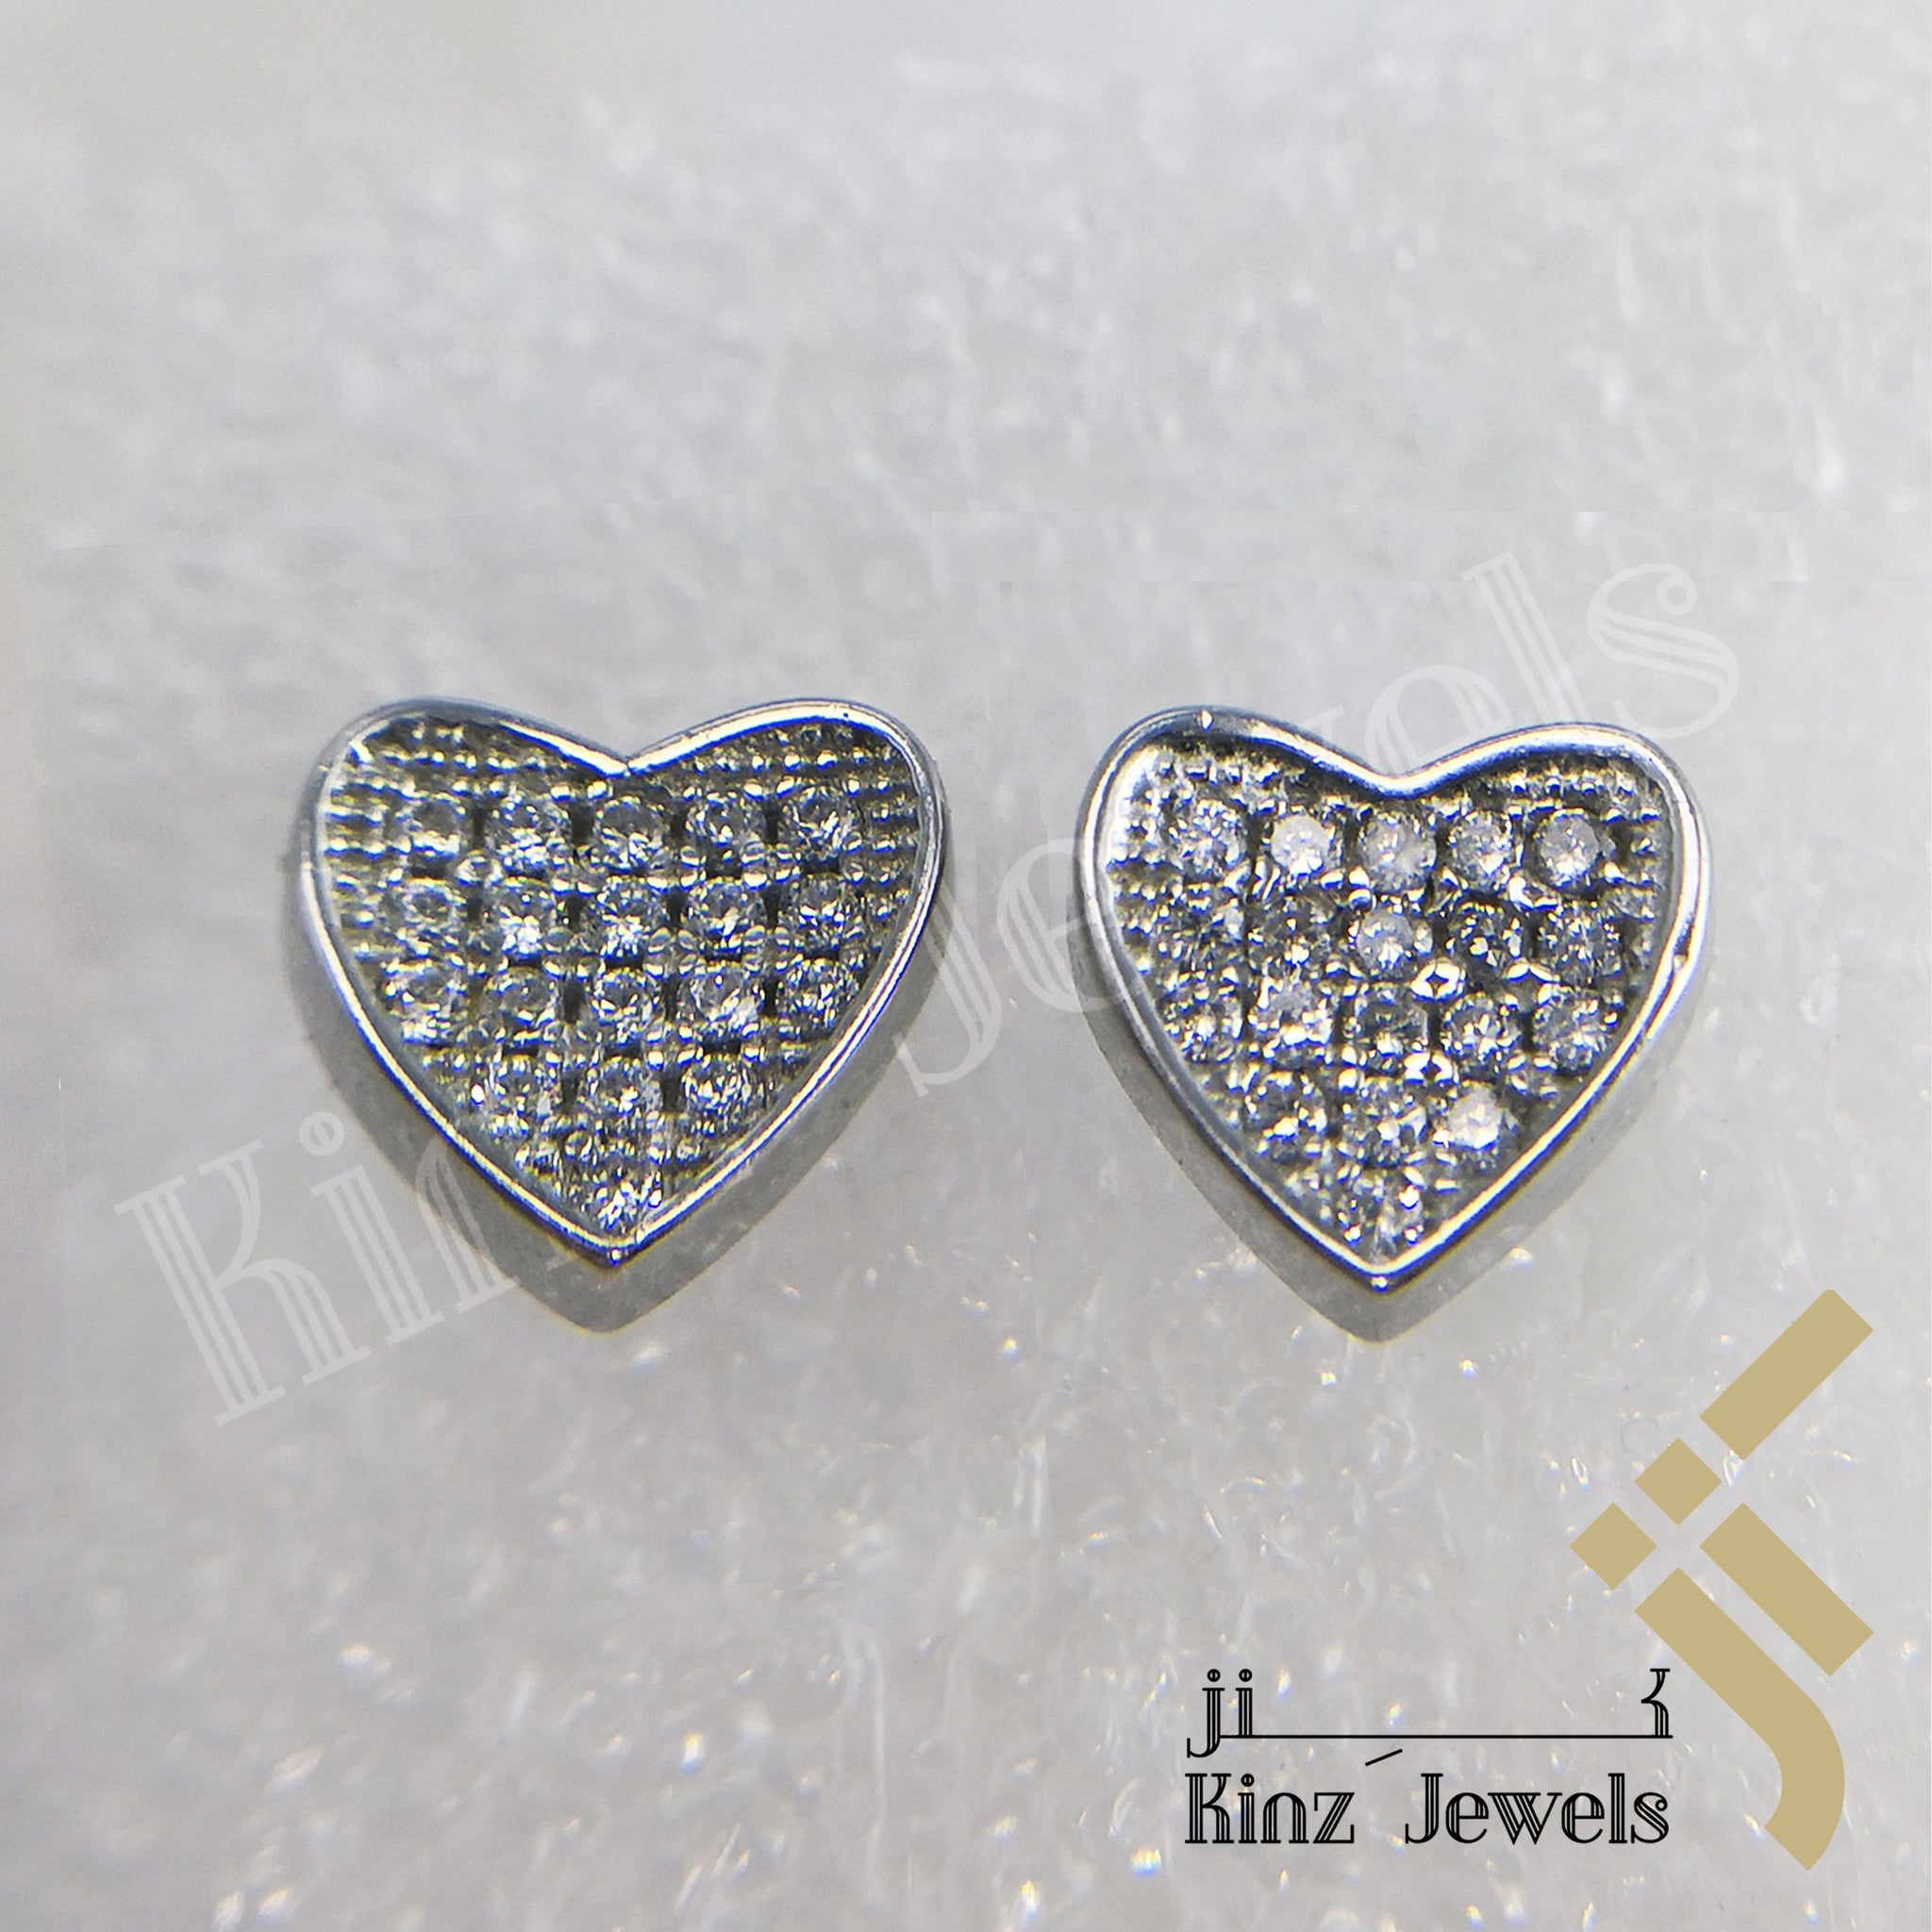 kinzjewels - Sterling Silver Rhodium Vermeil Heart Full Zircon Frame Earring